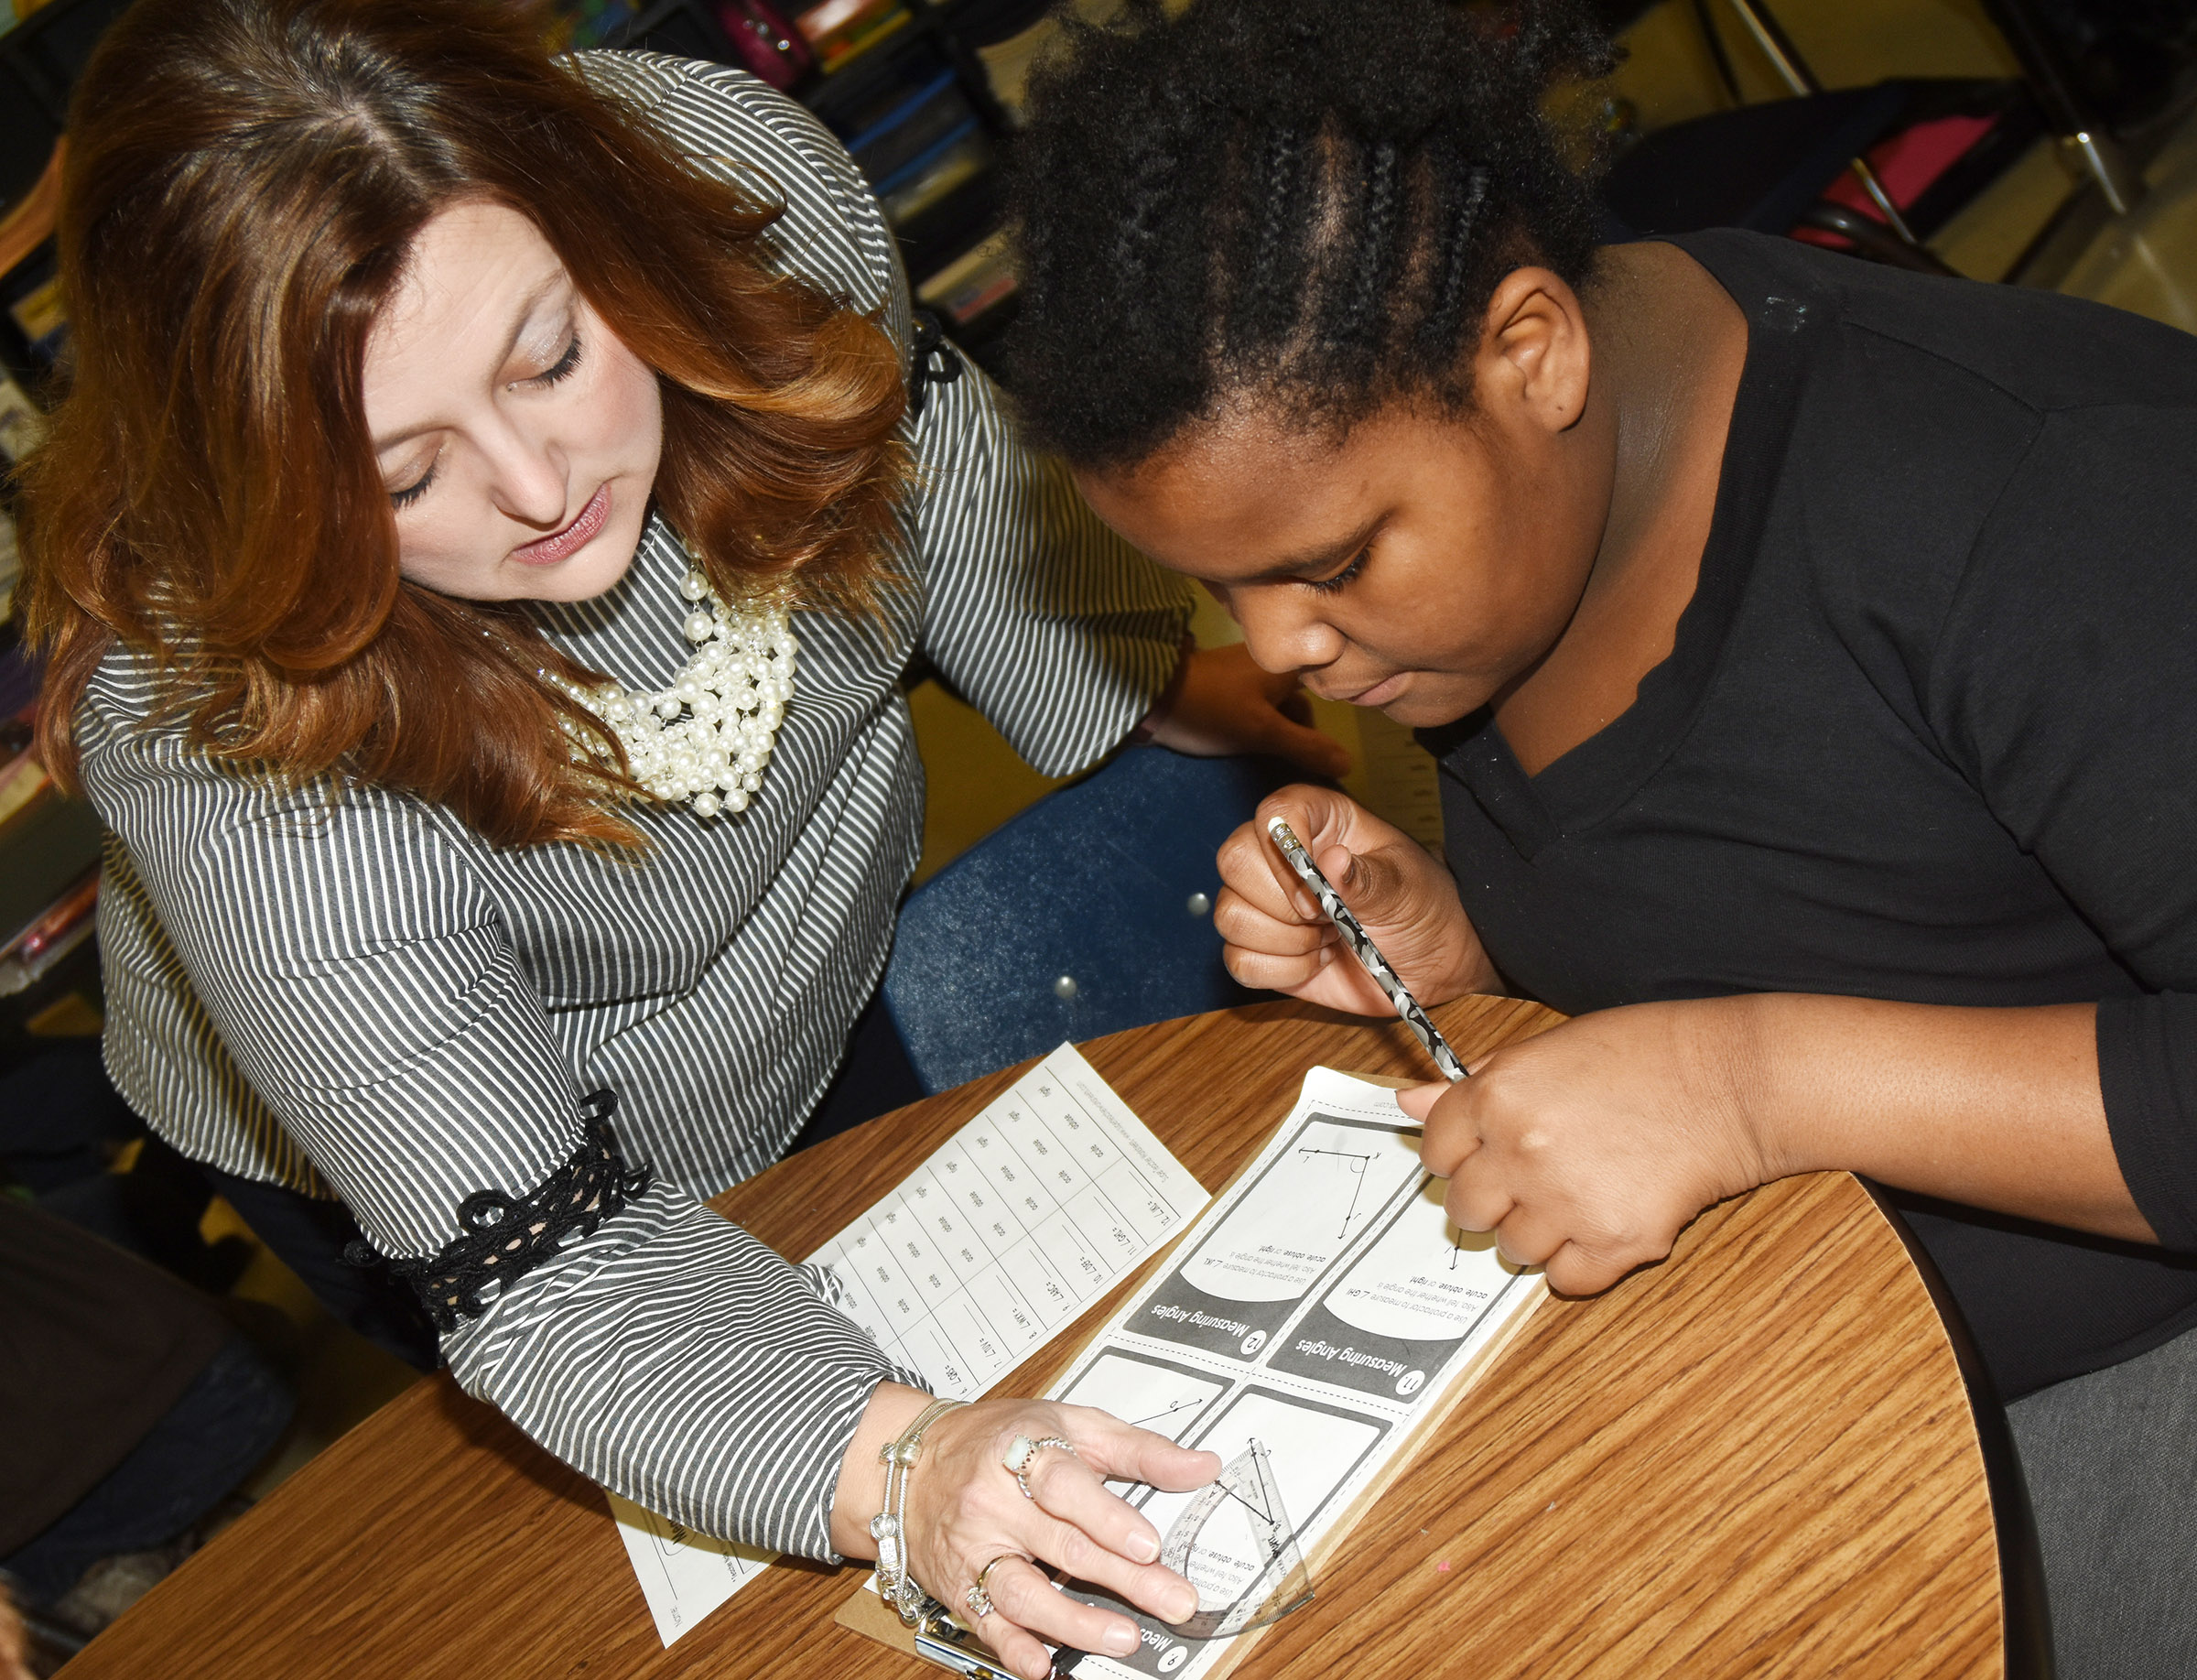 CES fourth-grade teacher Garnetta Murrell helps Talaysia Daniels measure an angle.